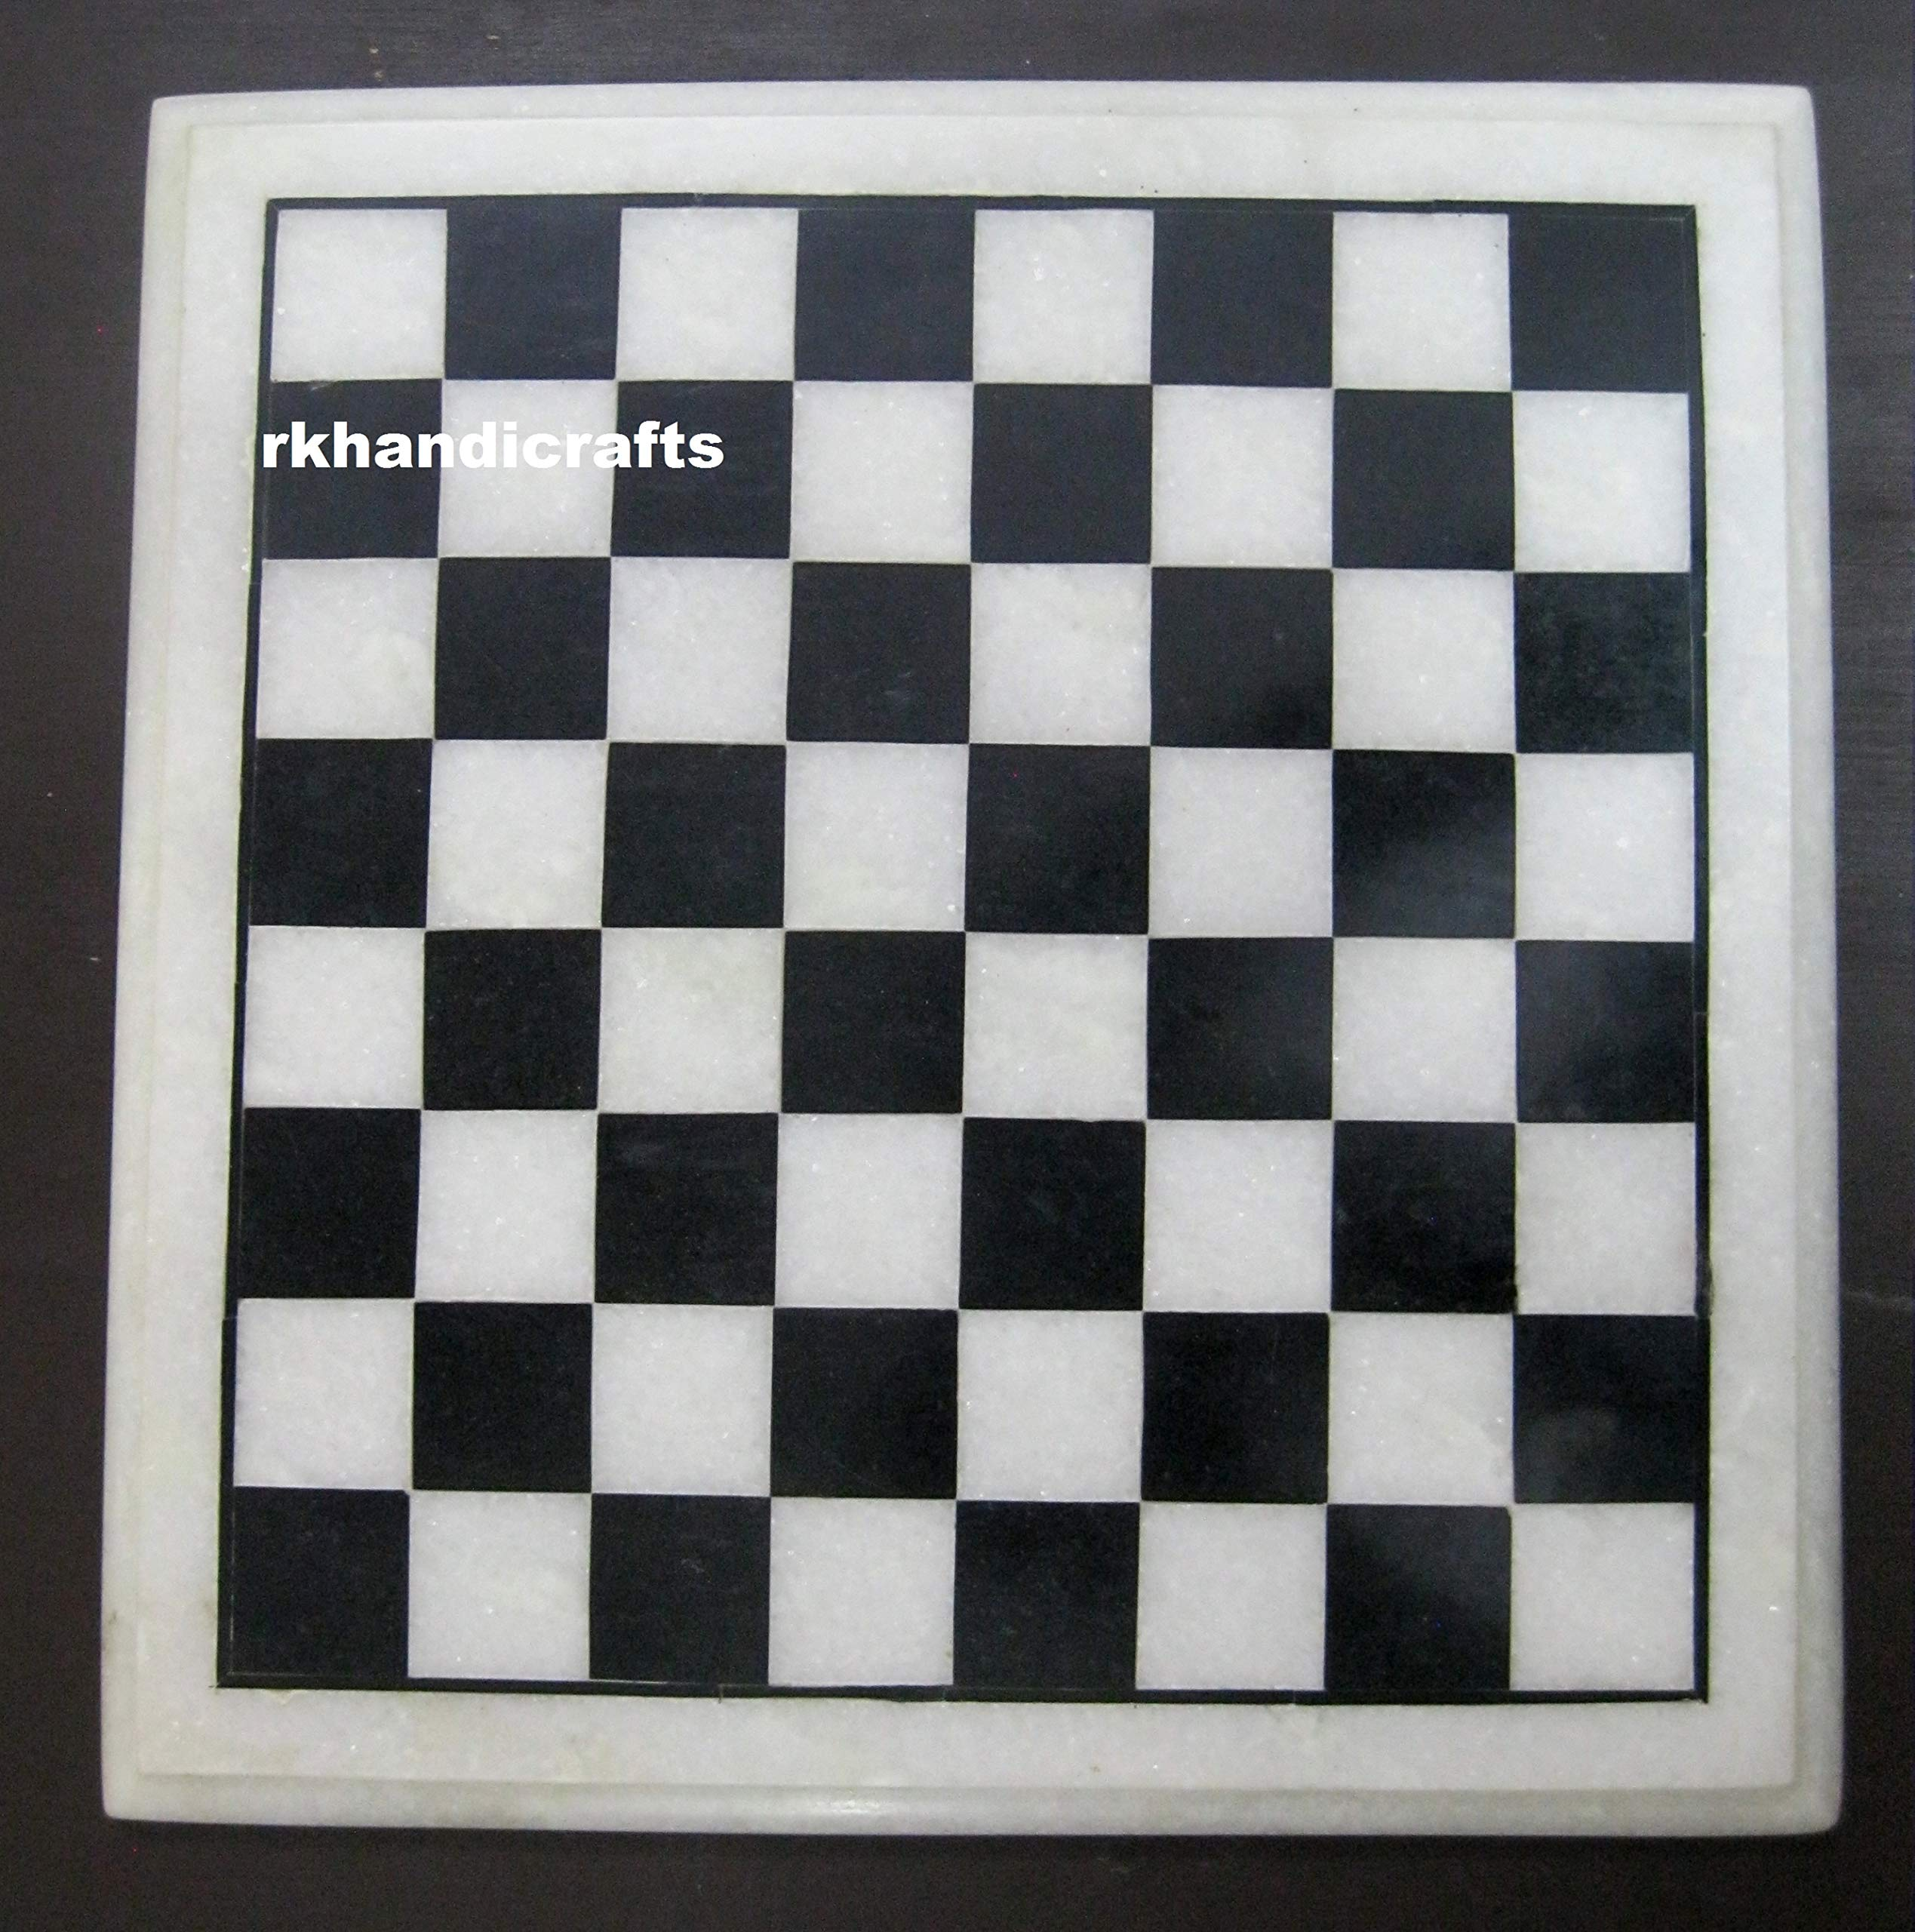 12 Inches White & Black Marble Chess Game Table Top Marquetry Art Handicraft Work by rkhandicrafts